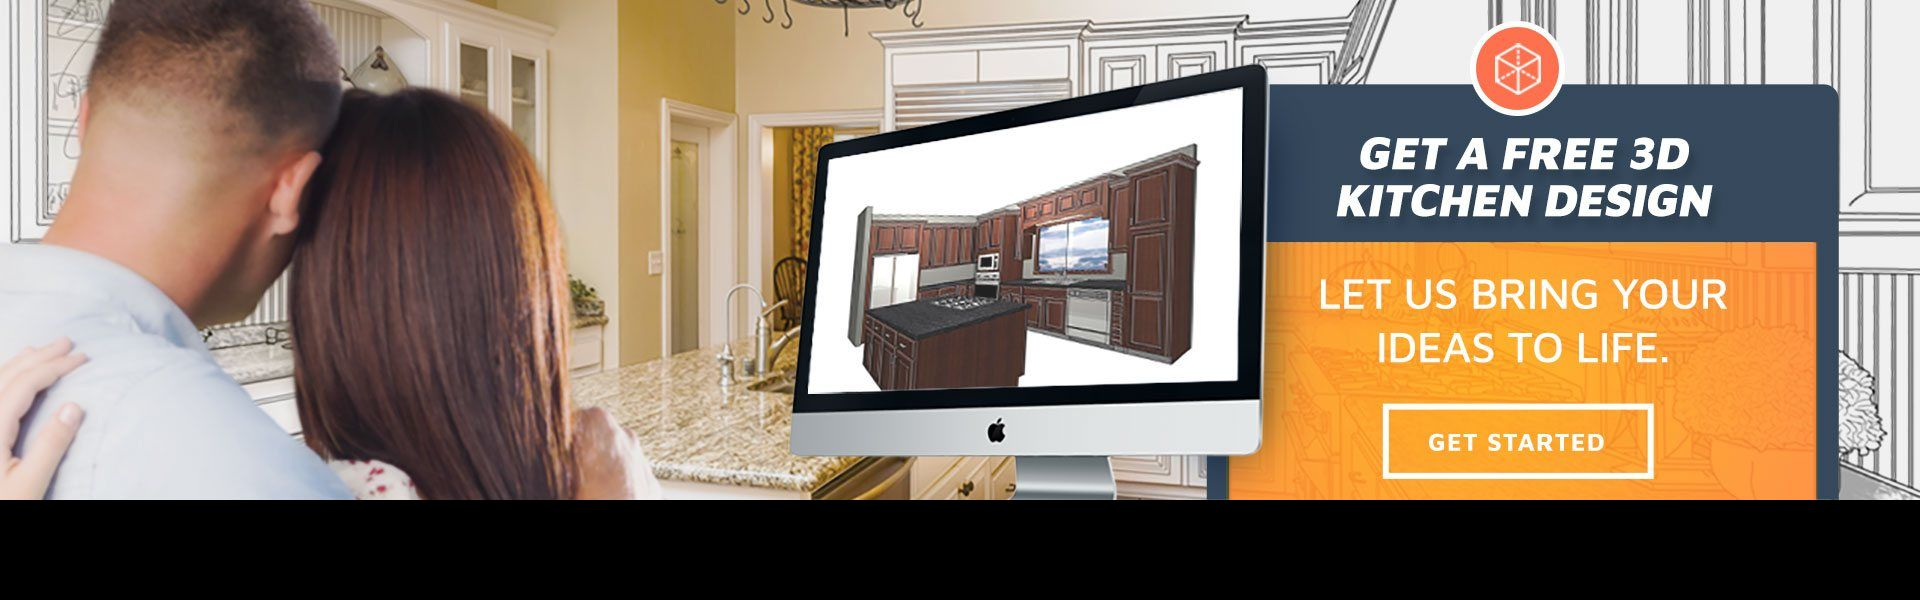 Free 3D Design - Kitchen Prefab cabinets,RTA kitchen ...